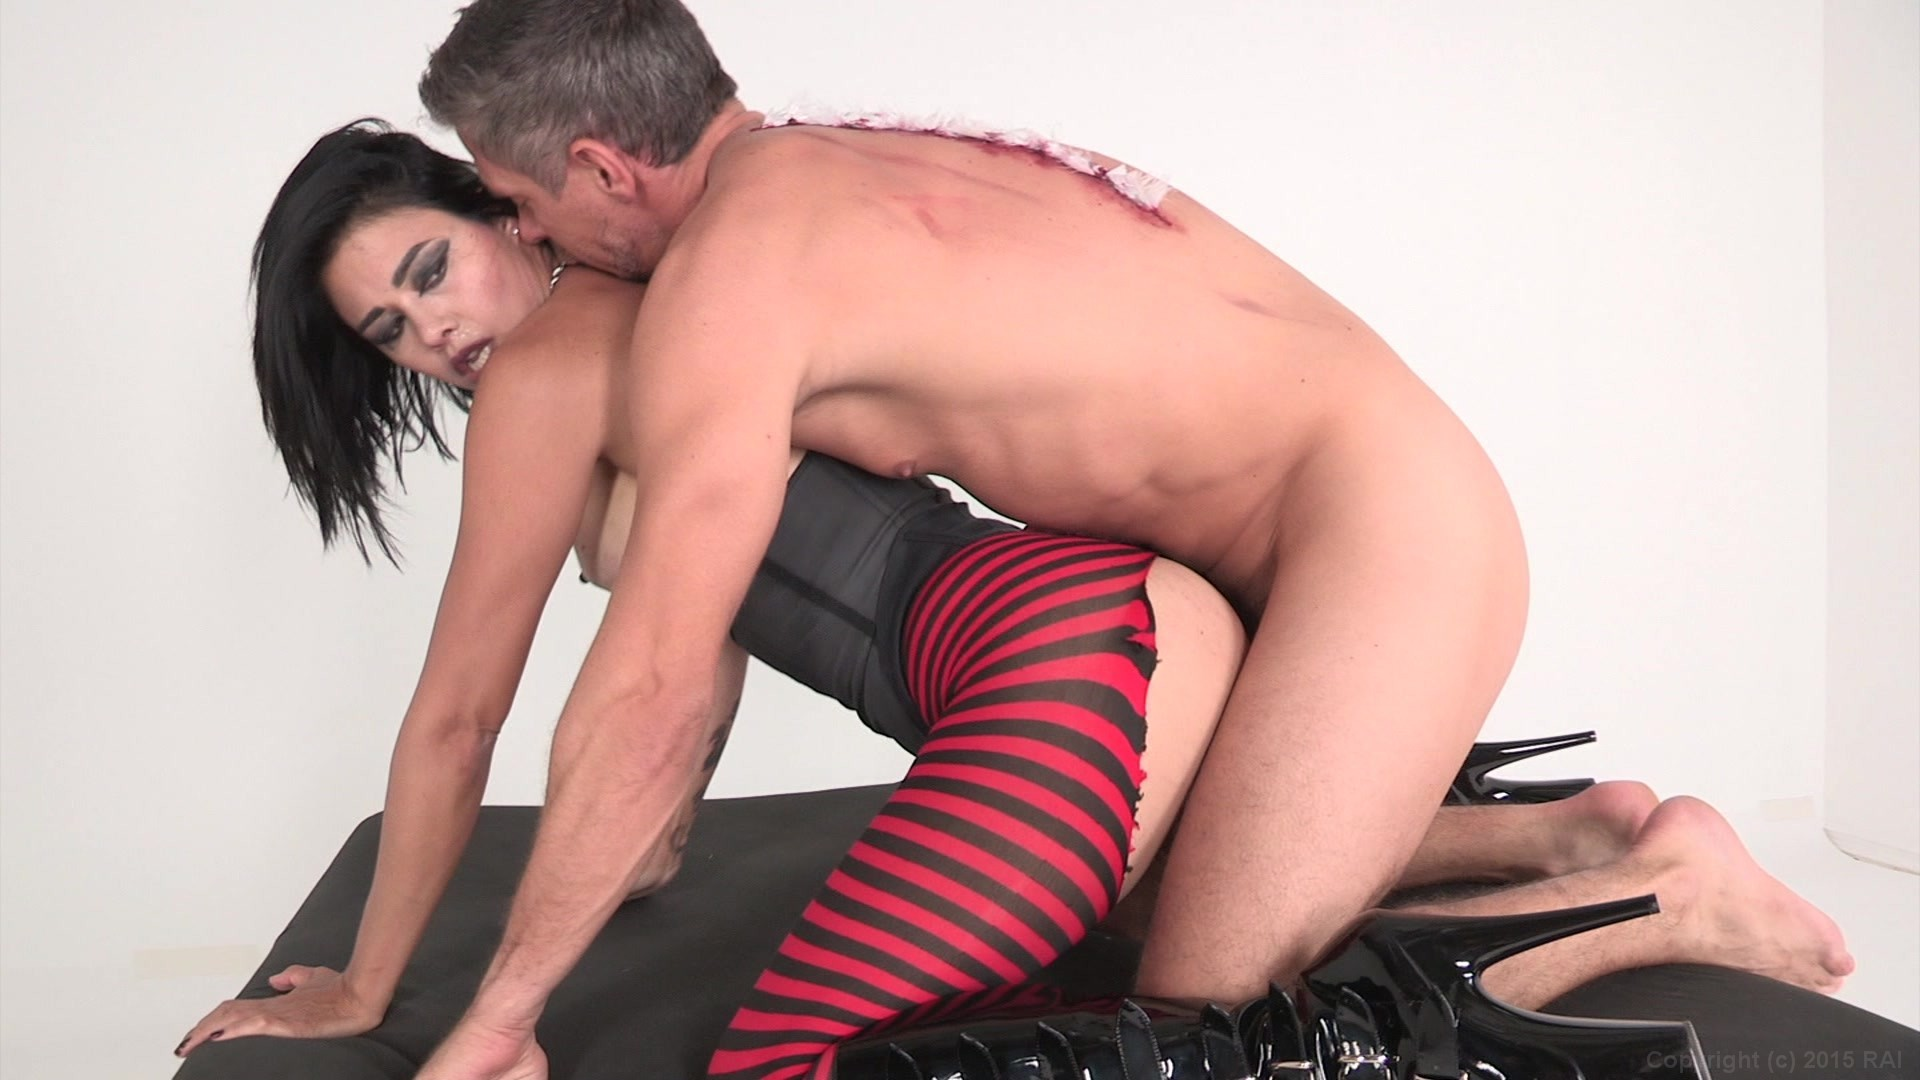 Scene with Mick Blue and Dana Vespoli - image 20 out of 20